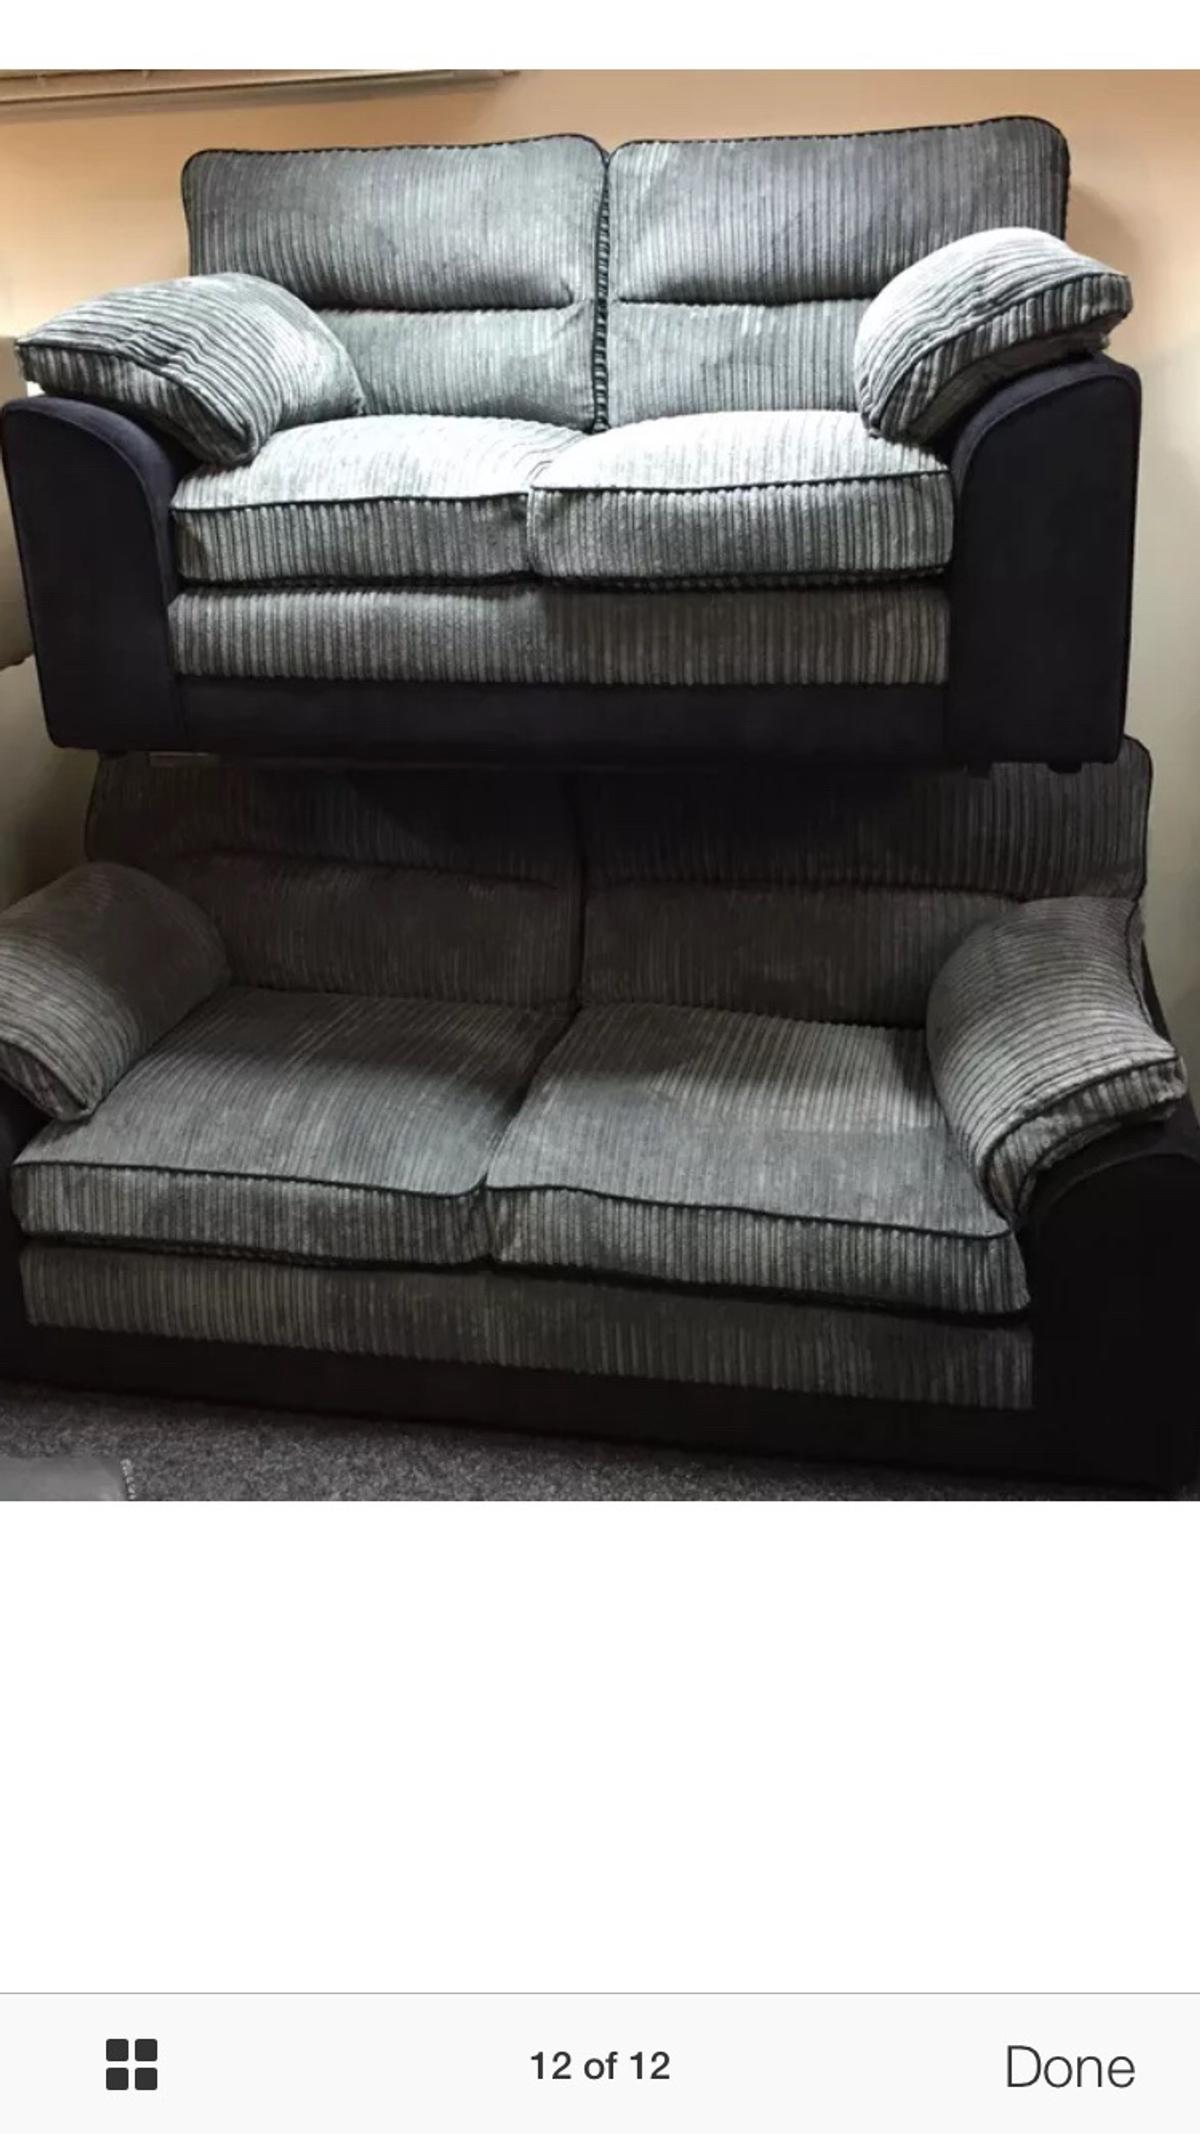 Sensational Littlewoods 3 2 Grey And Black Chord Sofa Set In Wf17 Unemploymentrelief Wooden Chair Designs For Living Room Unemploymentrelieforg